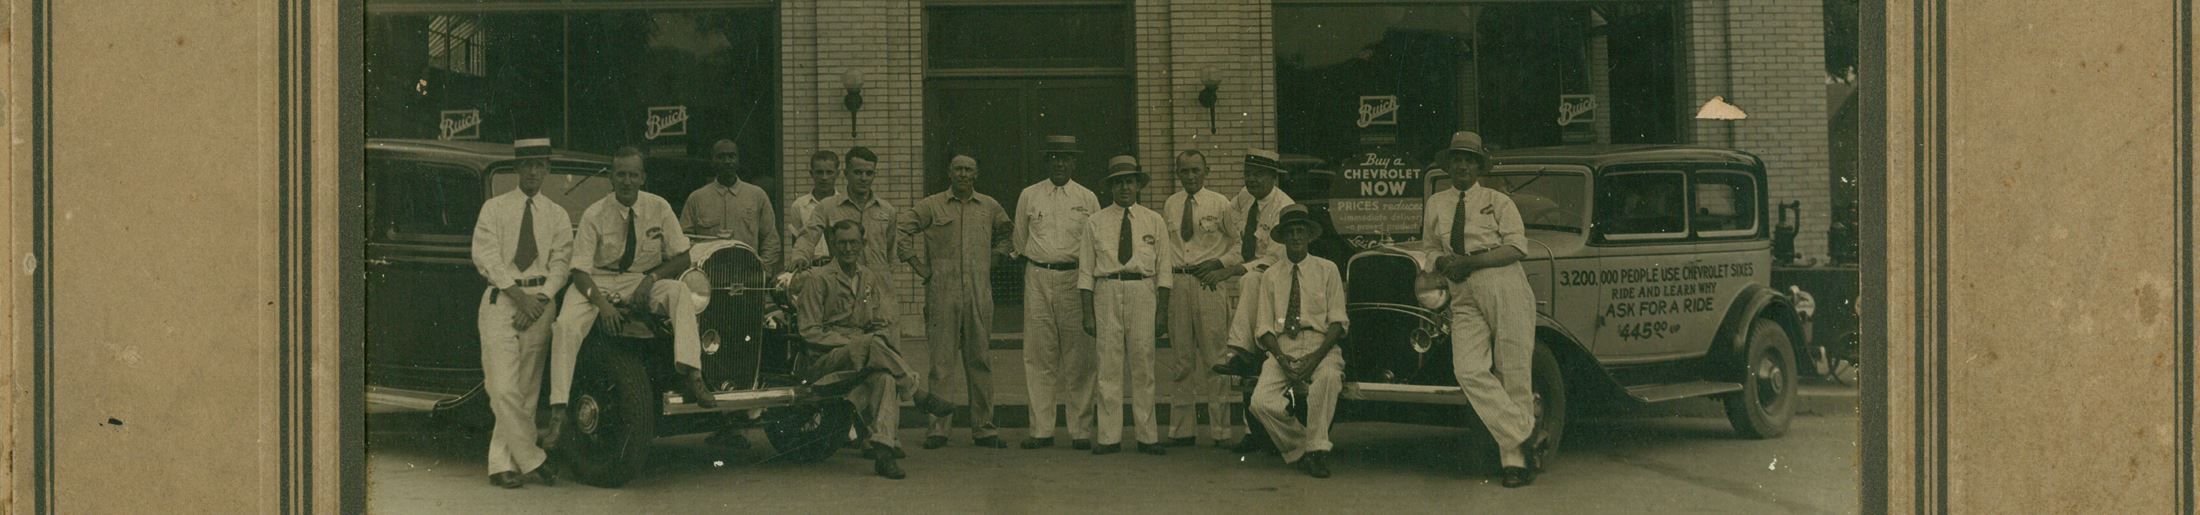 1920s auto dealership and employees